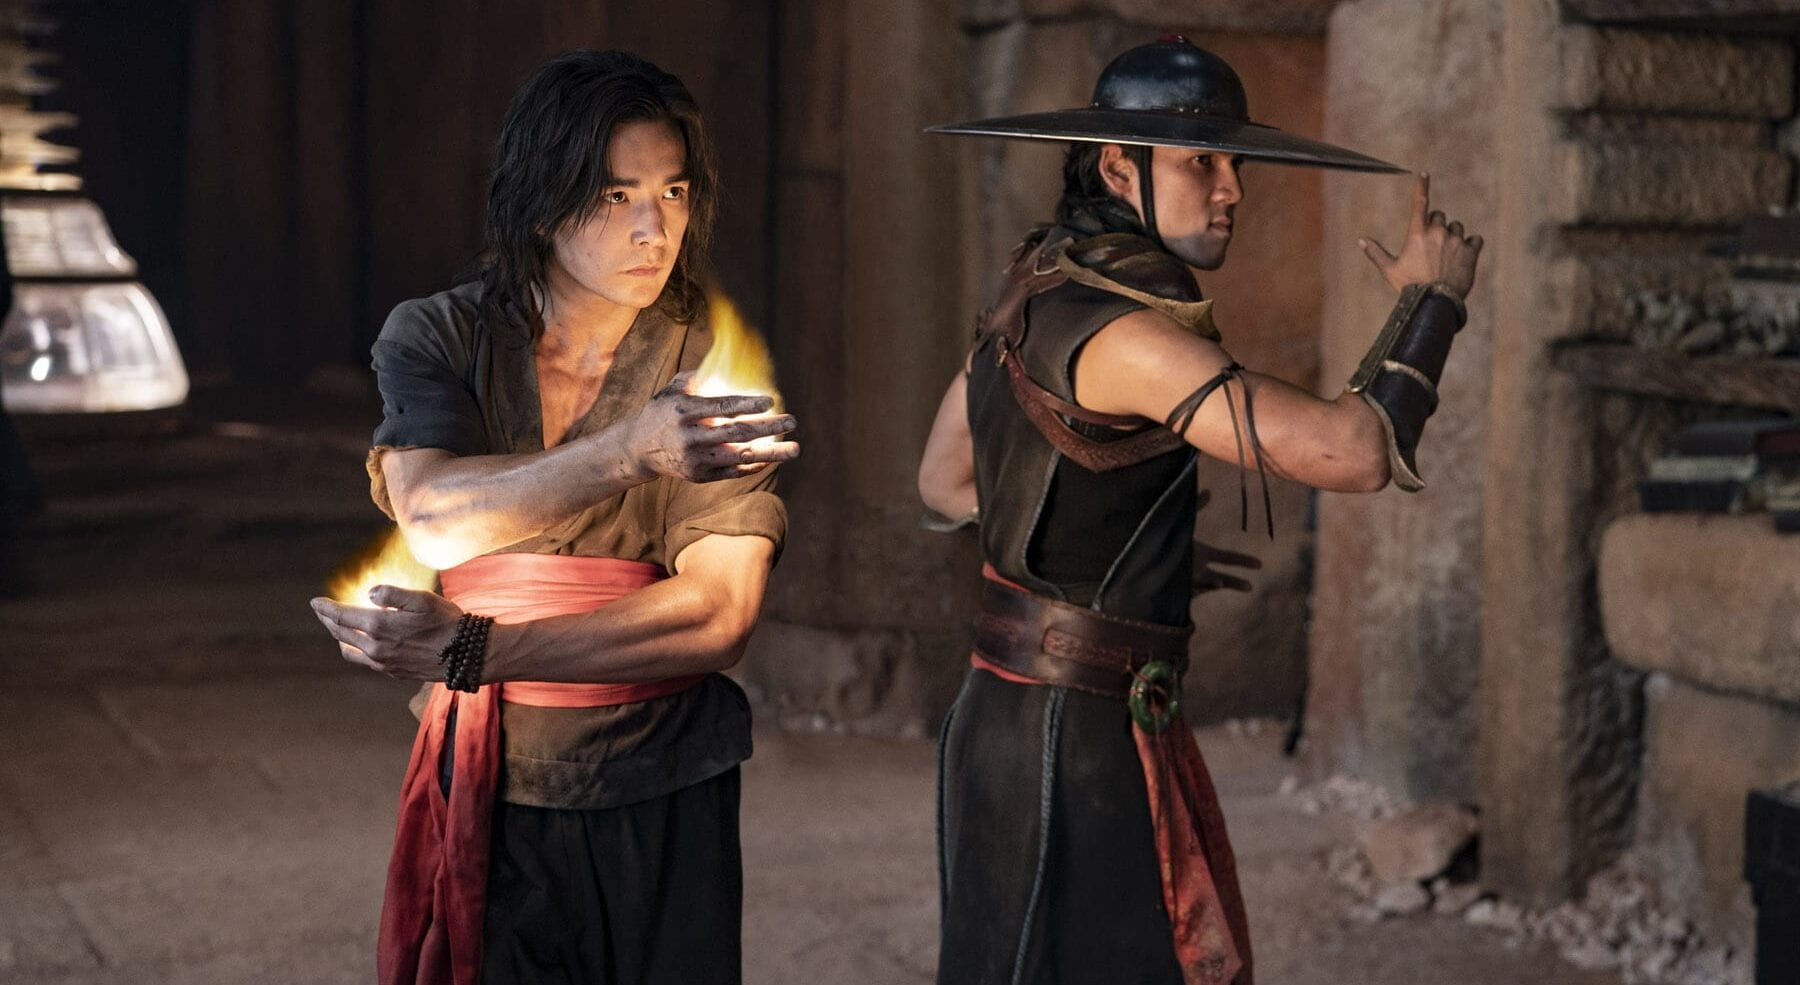 Behind-The-Scenes Video Shows Off Epic Mortal Kombat Movie Fights